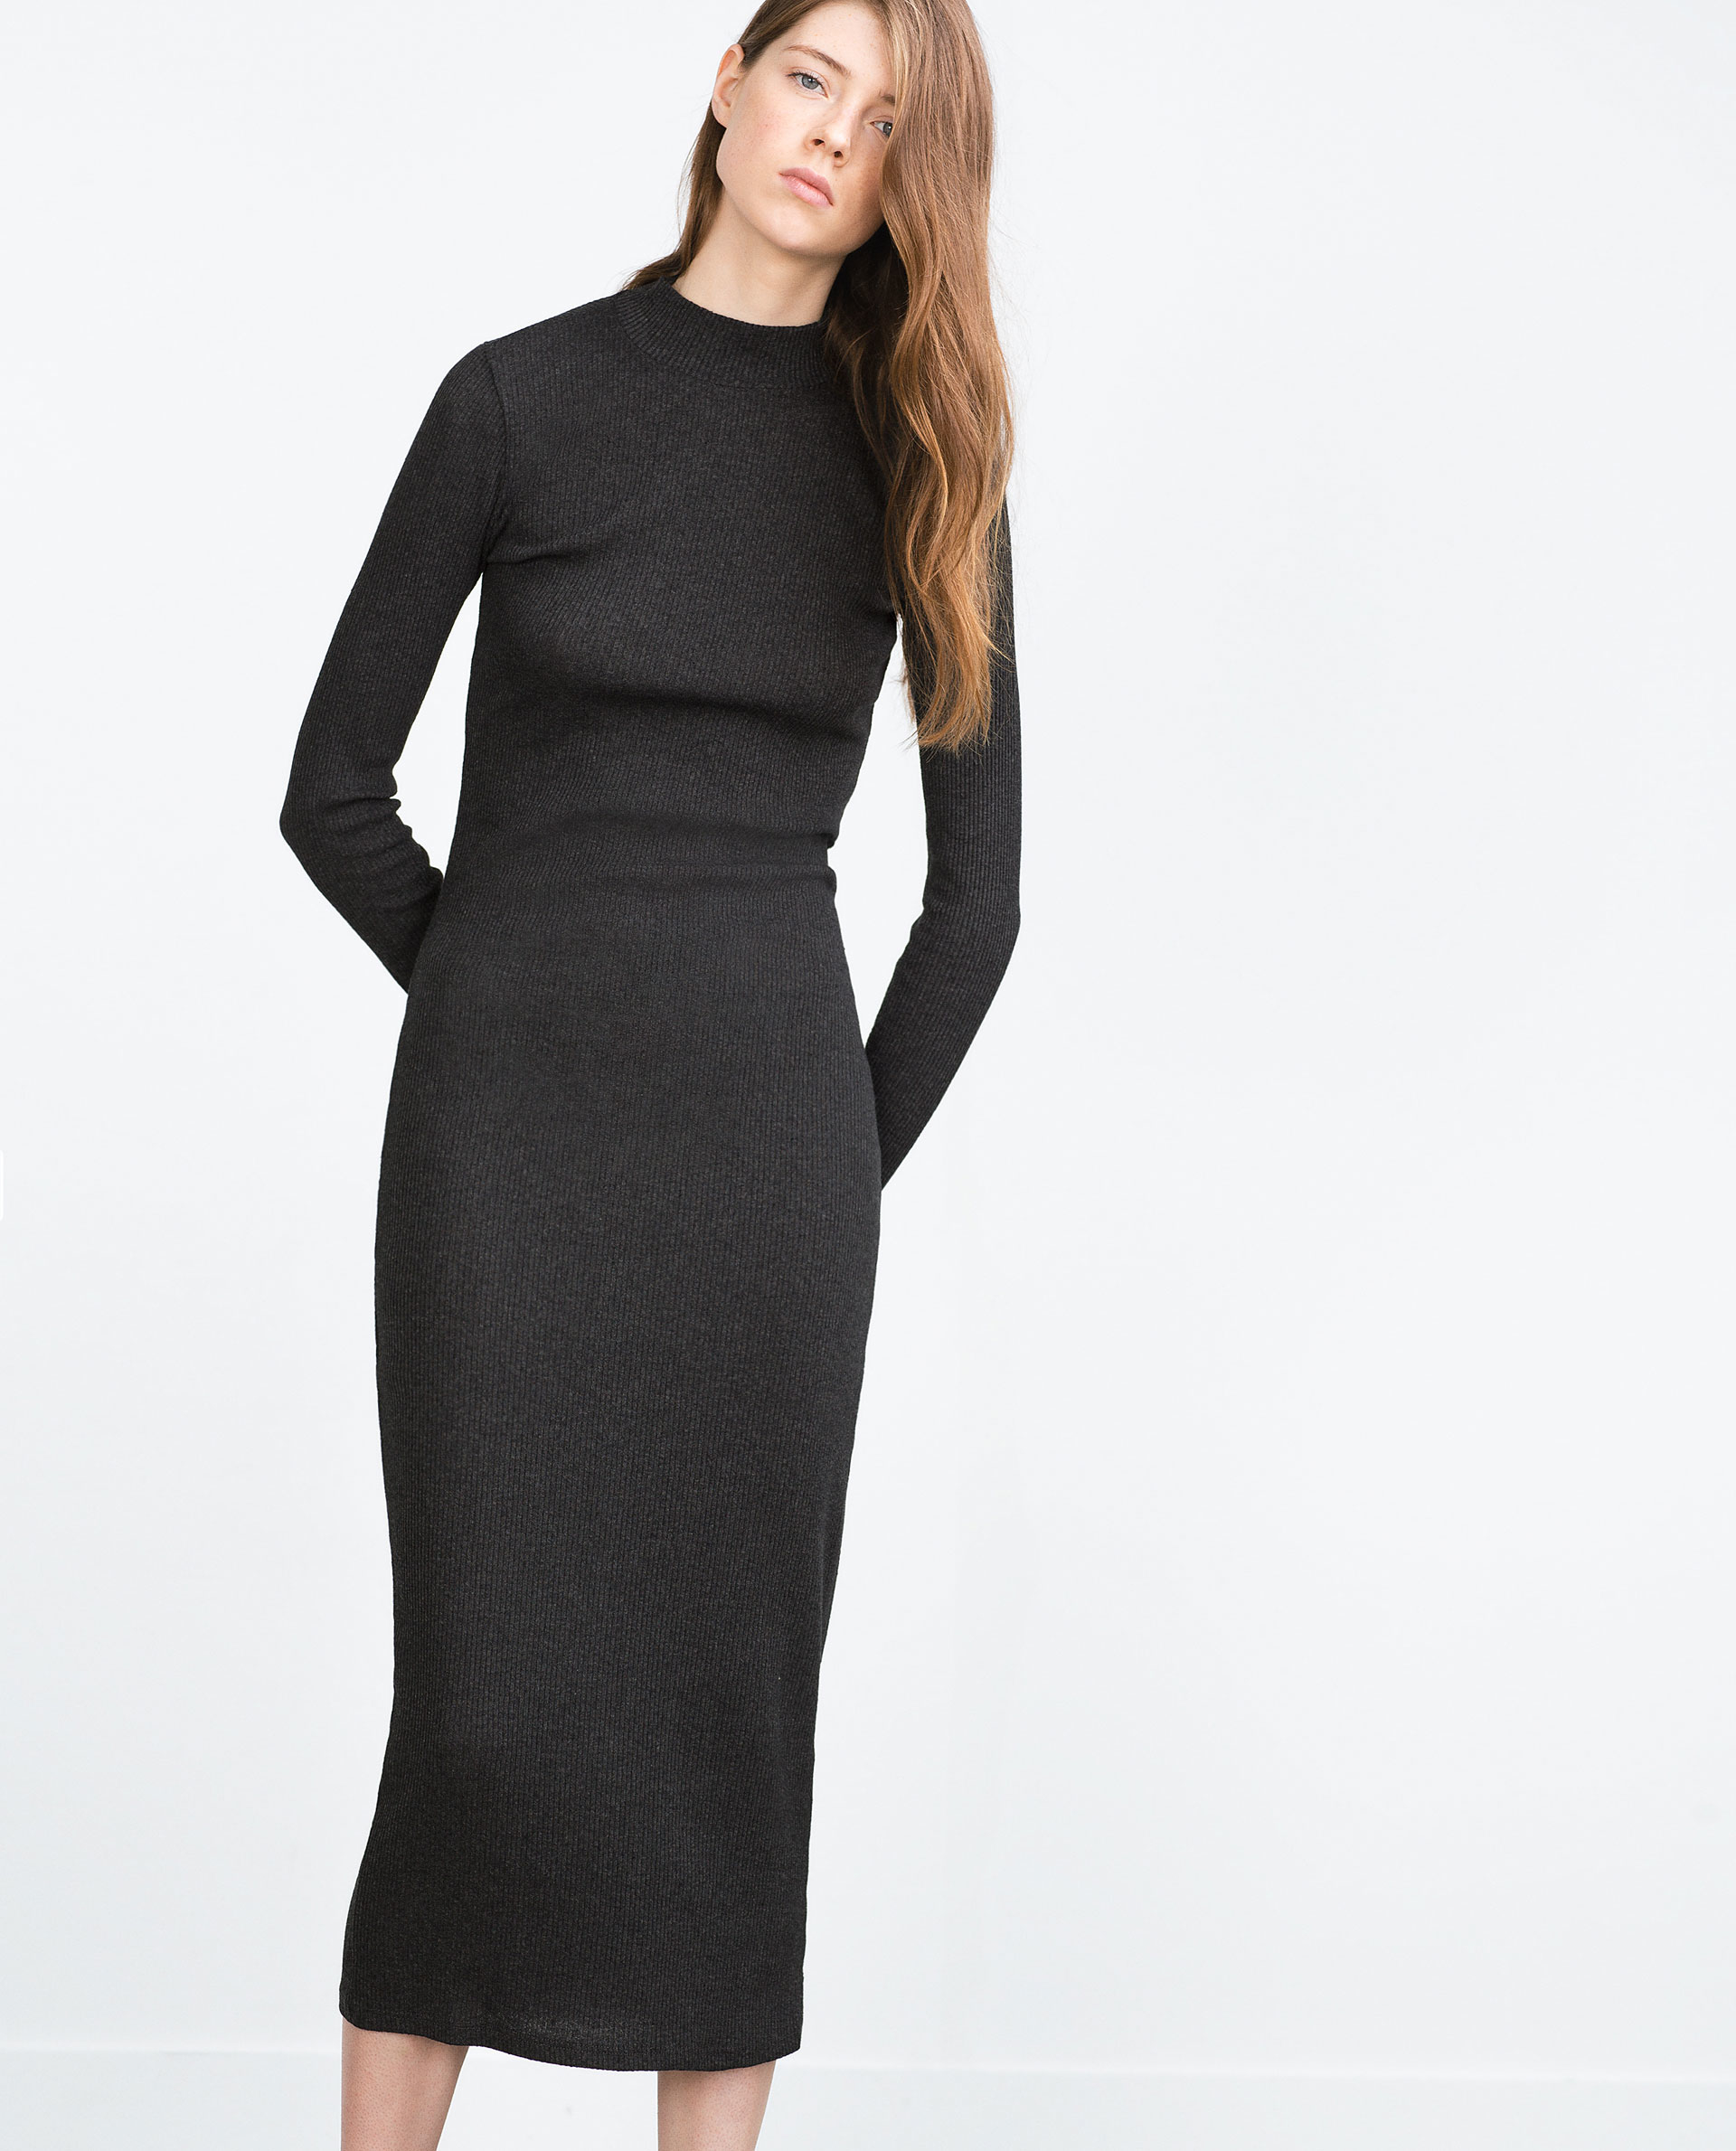 Buy the latest women's Knitted dresses online at low price. StyleWe offers cheap dresses in red, black, white and more for different occasions.